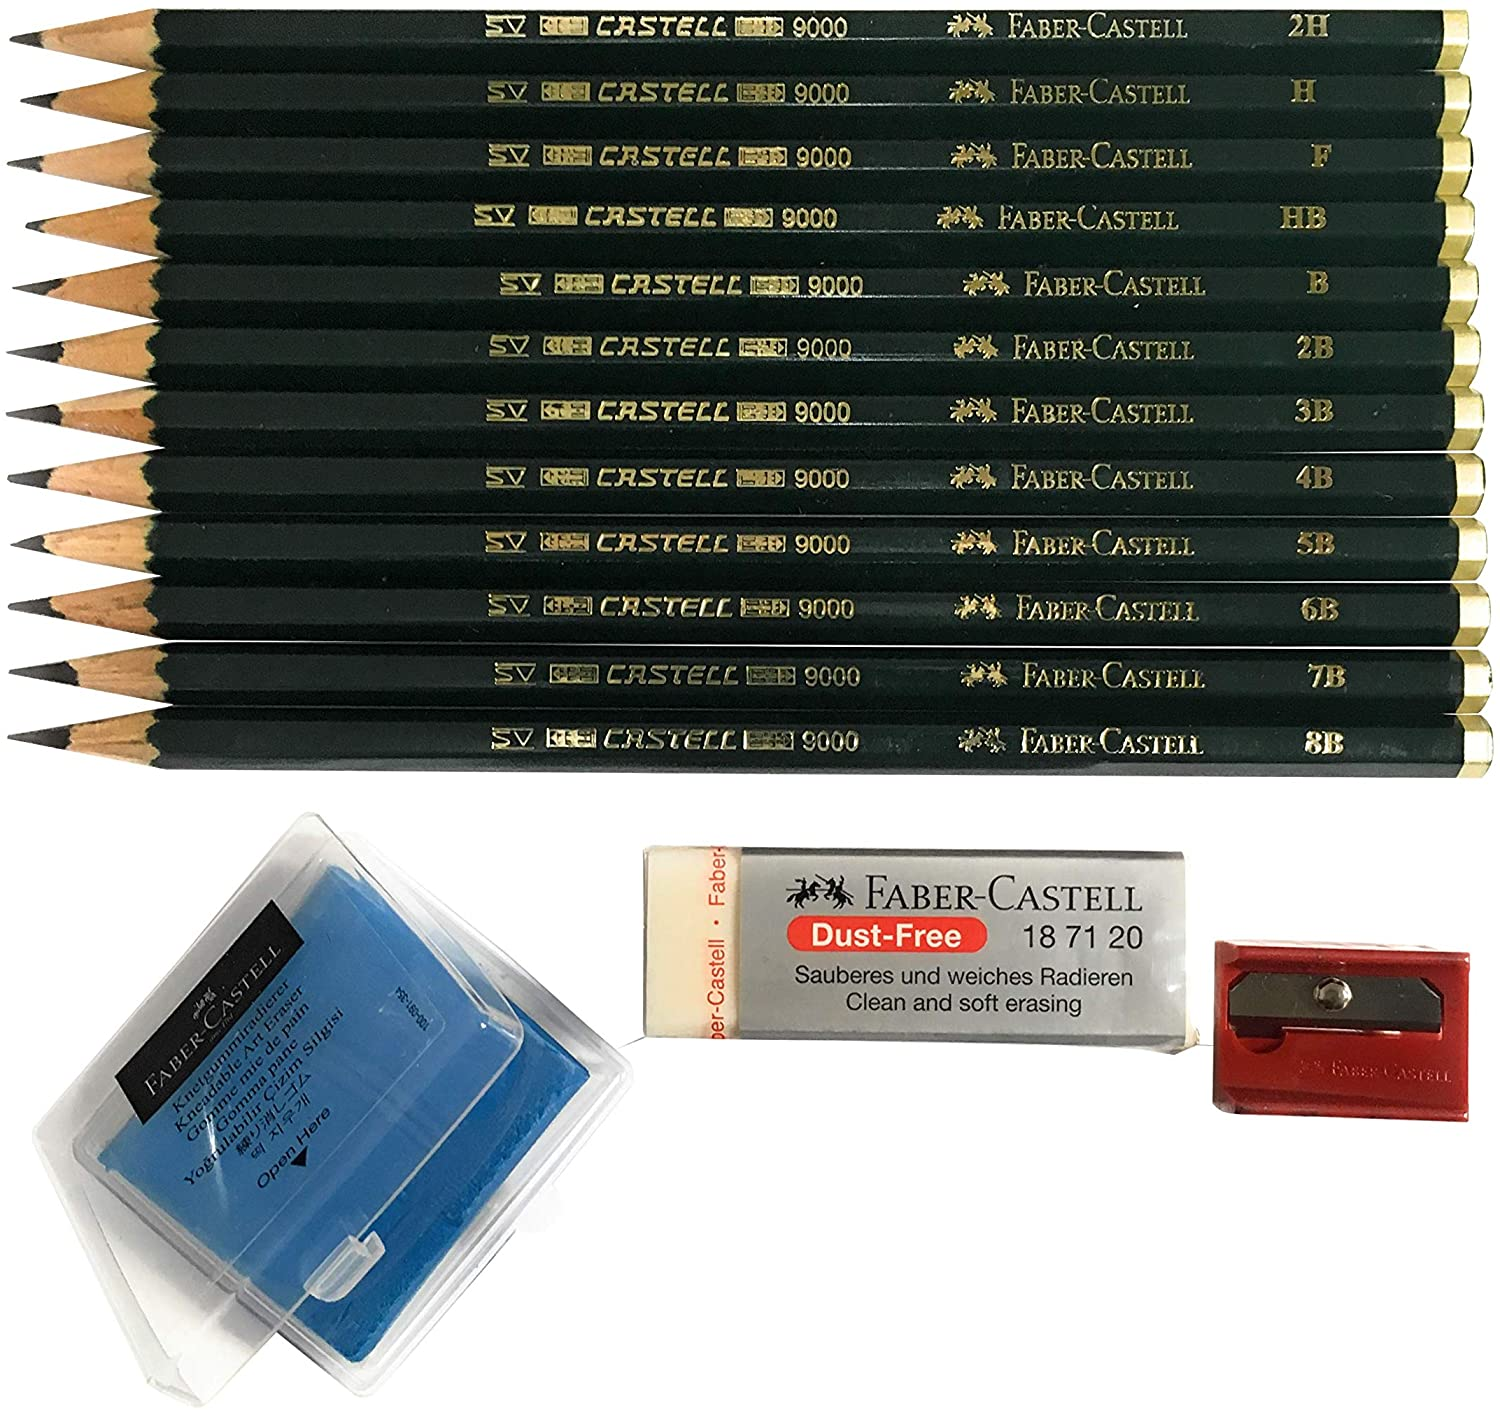 Faber-Castell 9000 Art Graphite Sketch Best Gifts Wood Pencil Sets 12 Counts With 12 Degree of Hardness (2H, H, F, HB.) + 1 Kneaded Art Eraser + 1 Large Dust Free Eraser + 1 Faber Sharpener